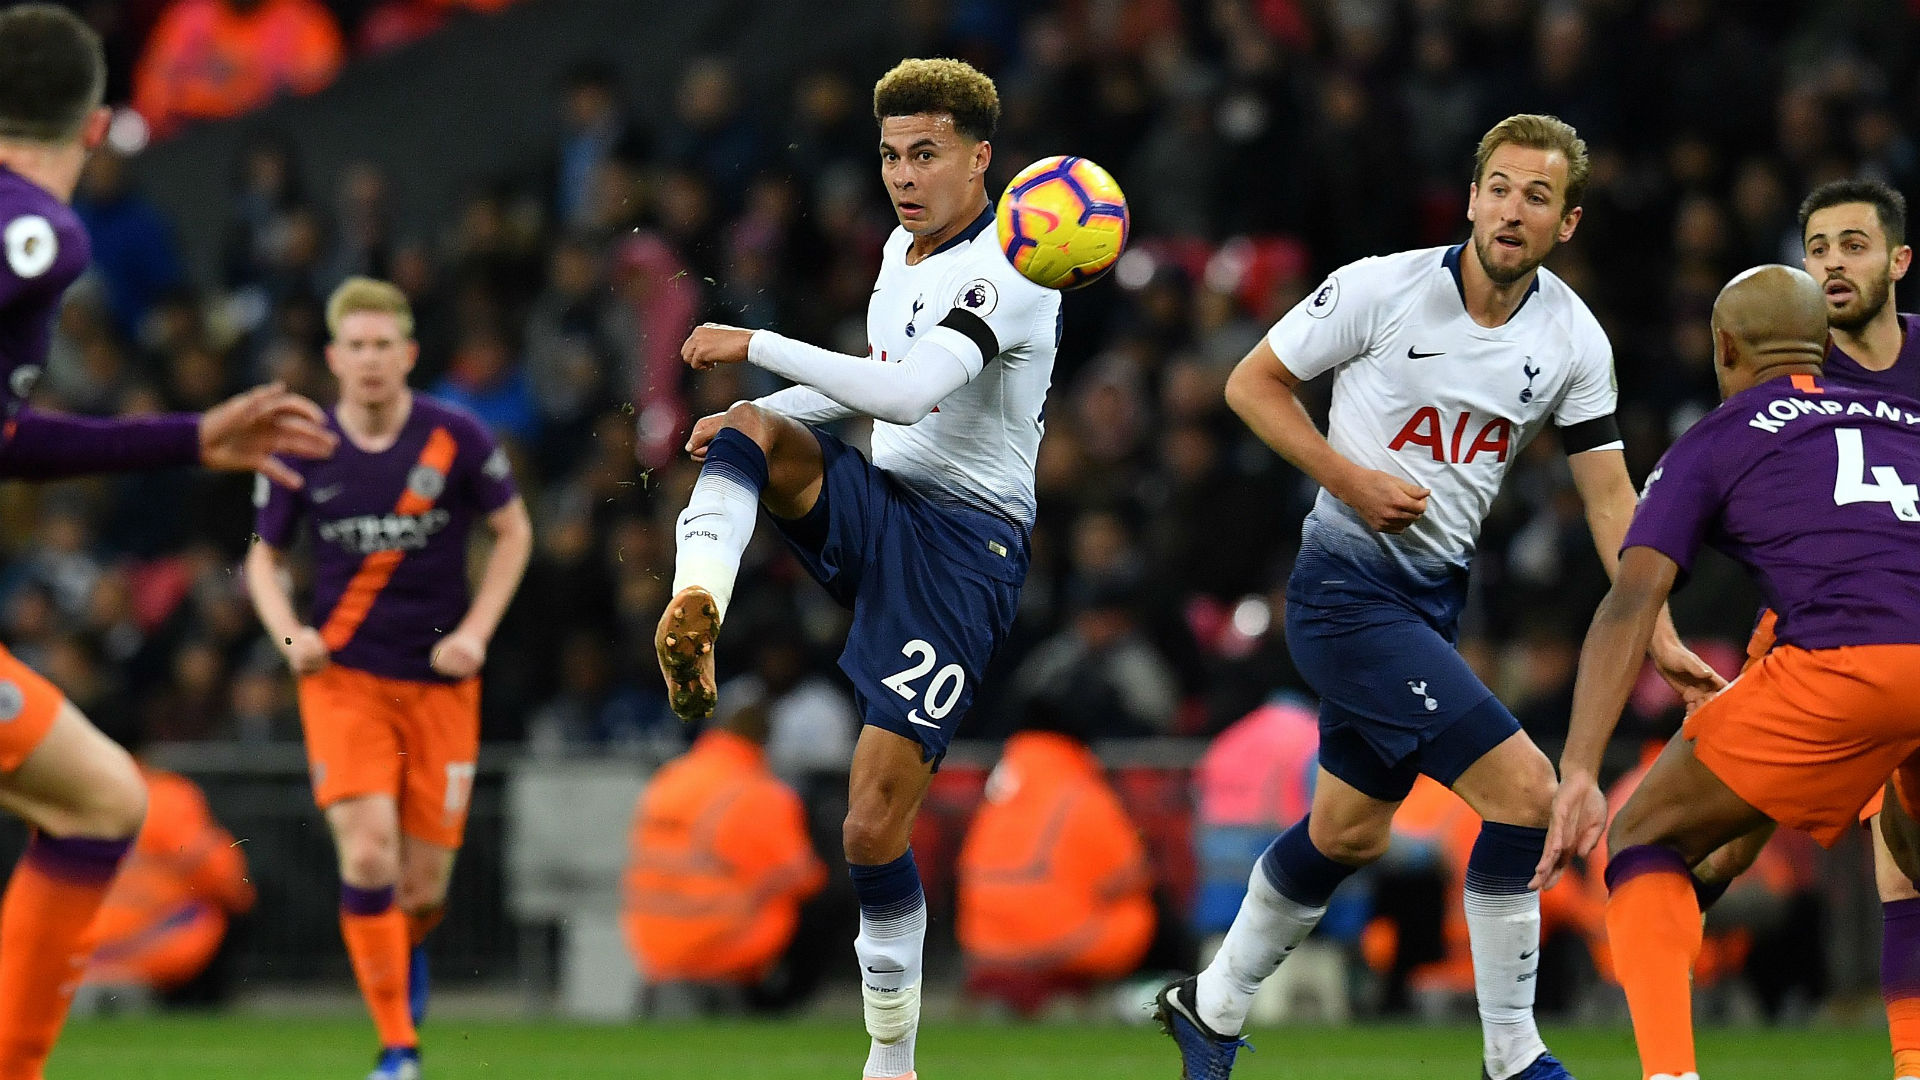 Champions League Tottenham Only Have Outside Chance Against Man City Former Spurs Boss Tim Sherwood Sees Blues As Europe s Best Goal com